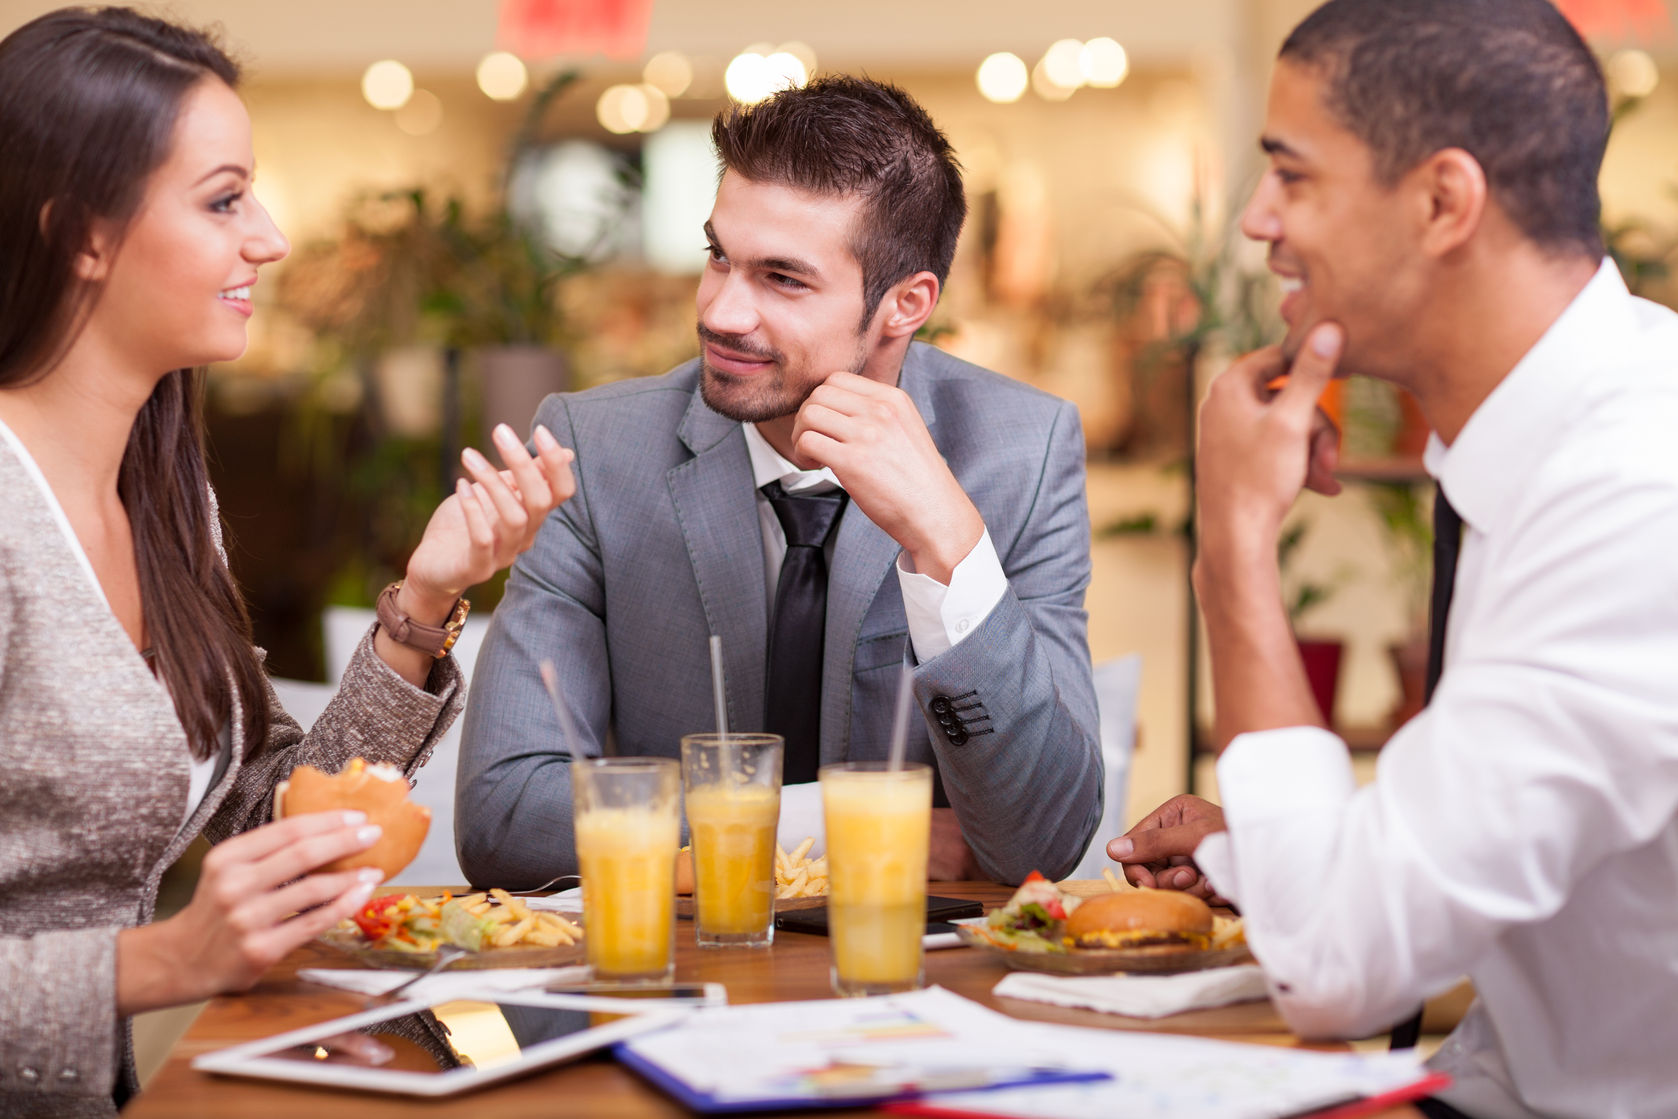 Business Analyst Conferences offer different opportunities for different people.